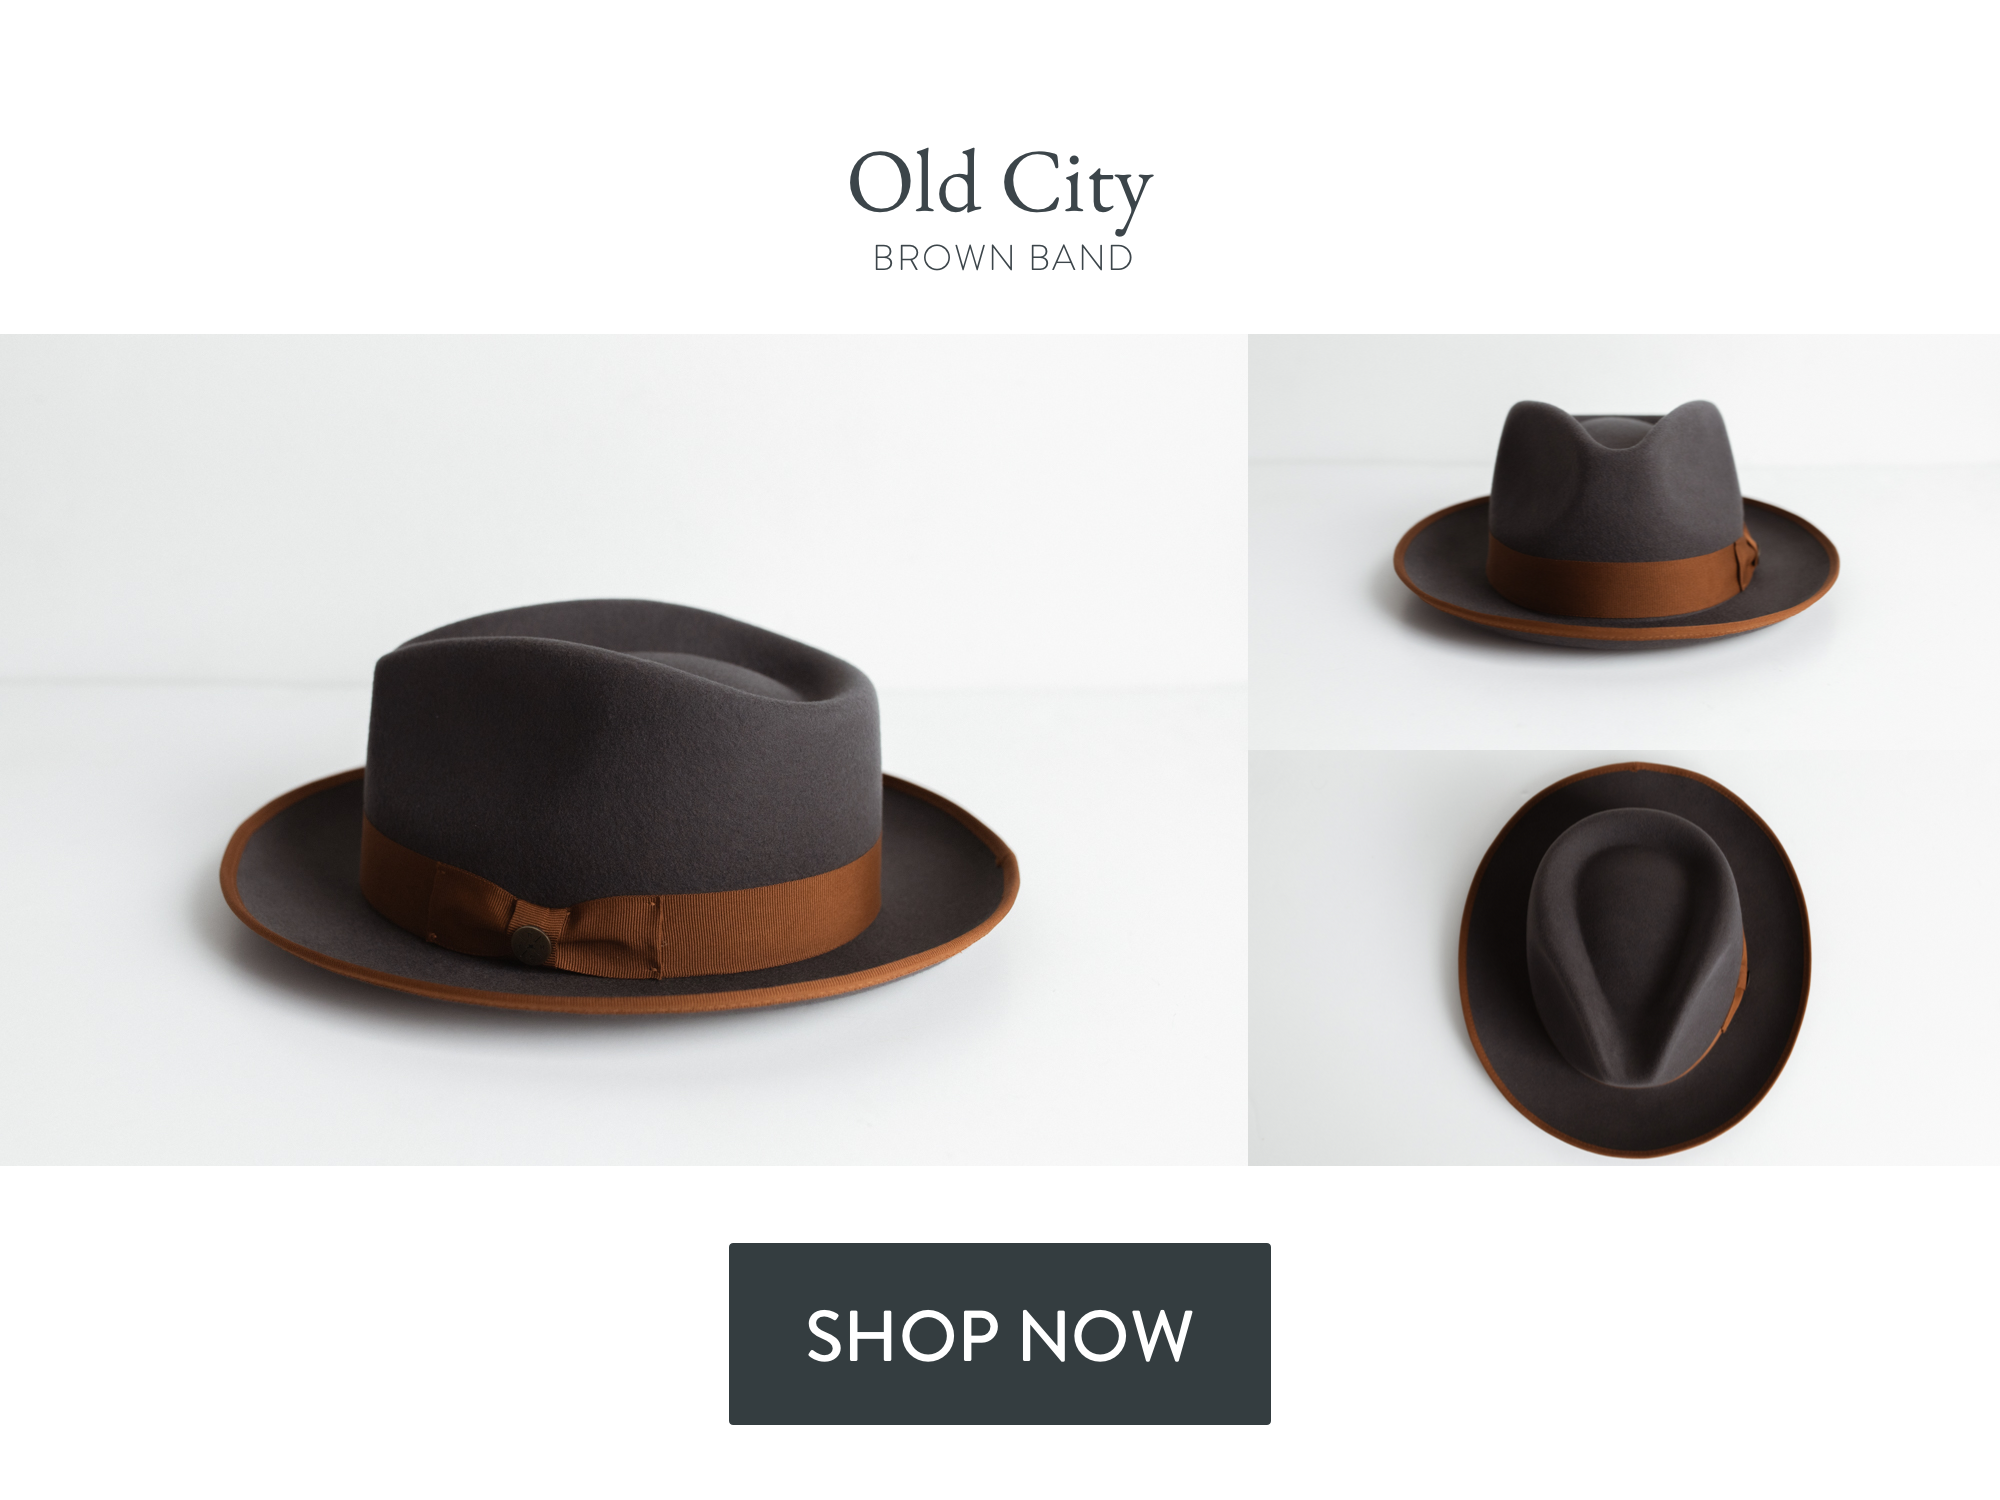 Featured hat: Two Roads Old City, Brown Band